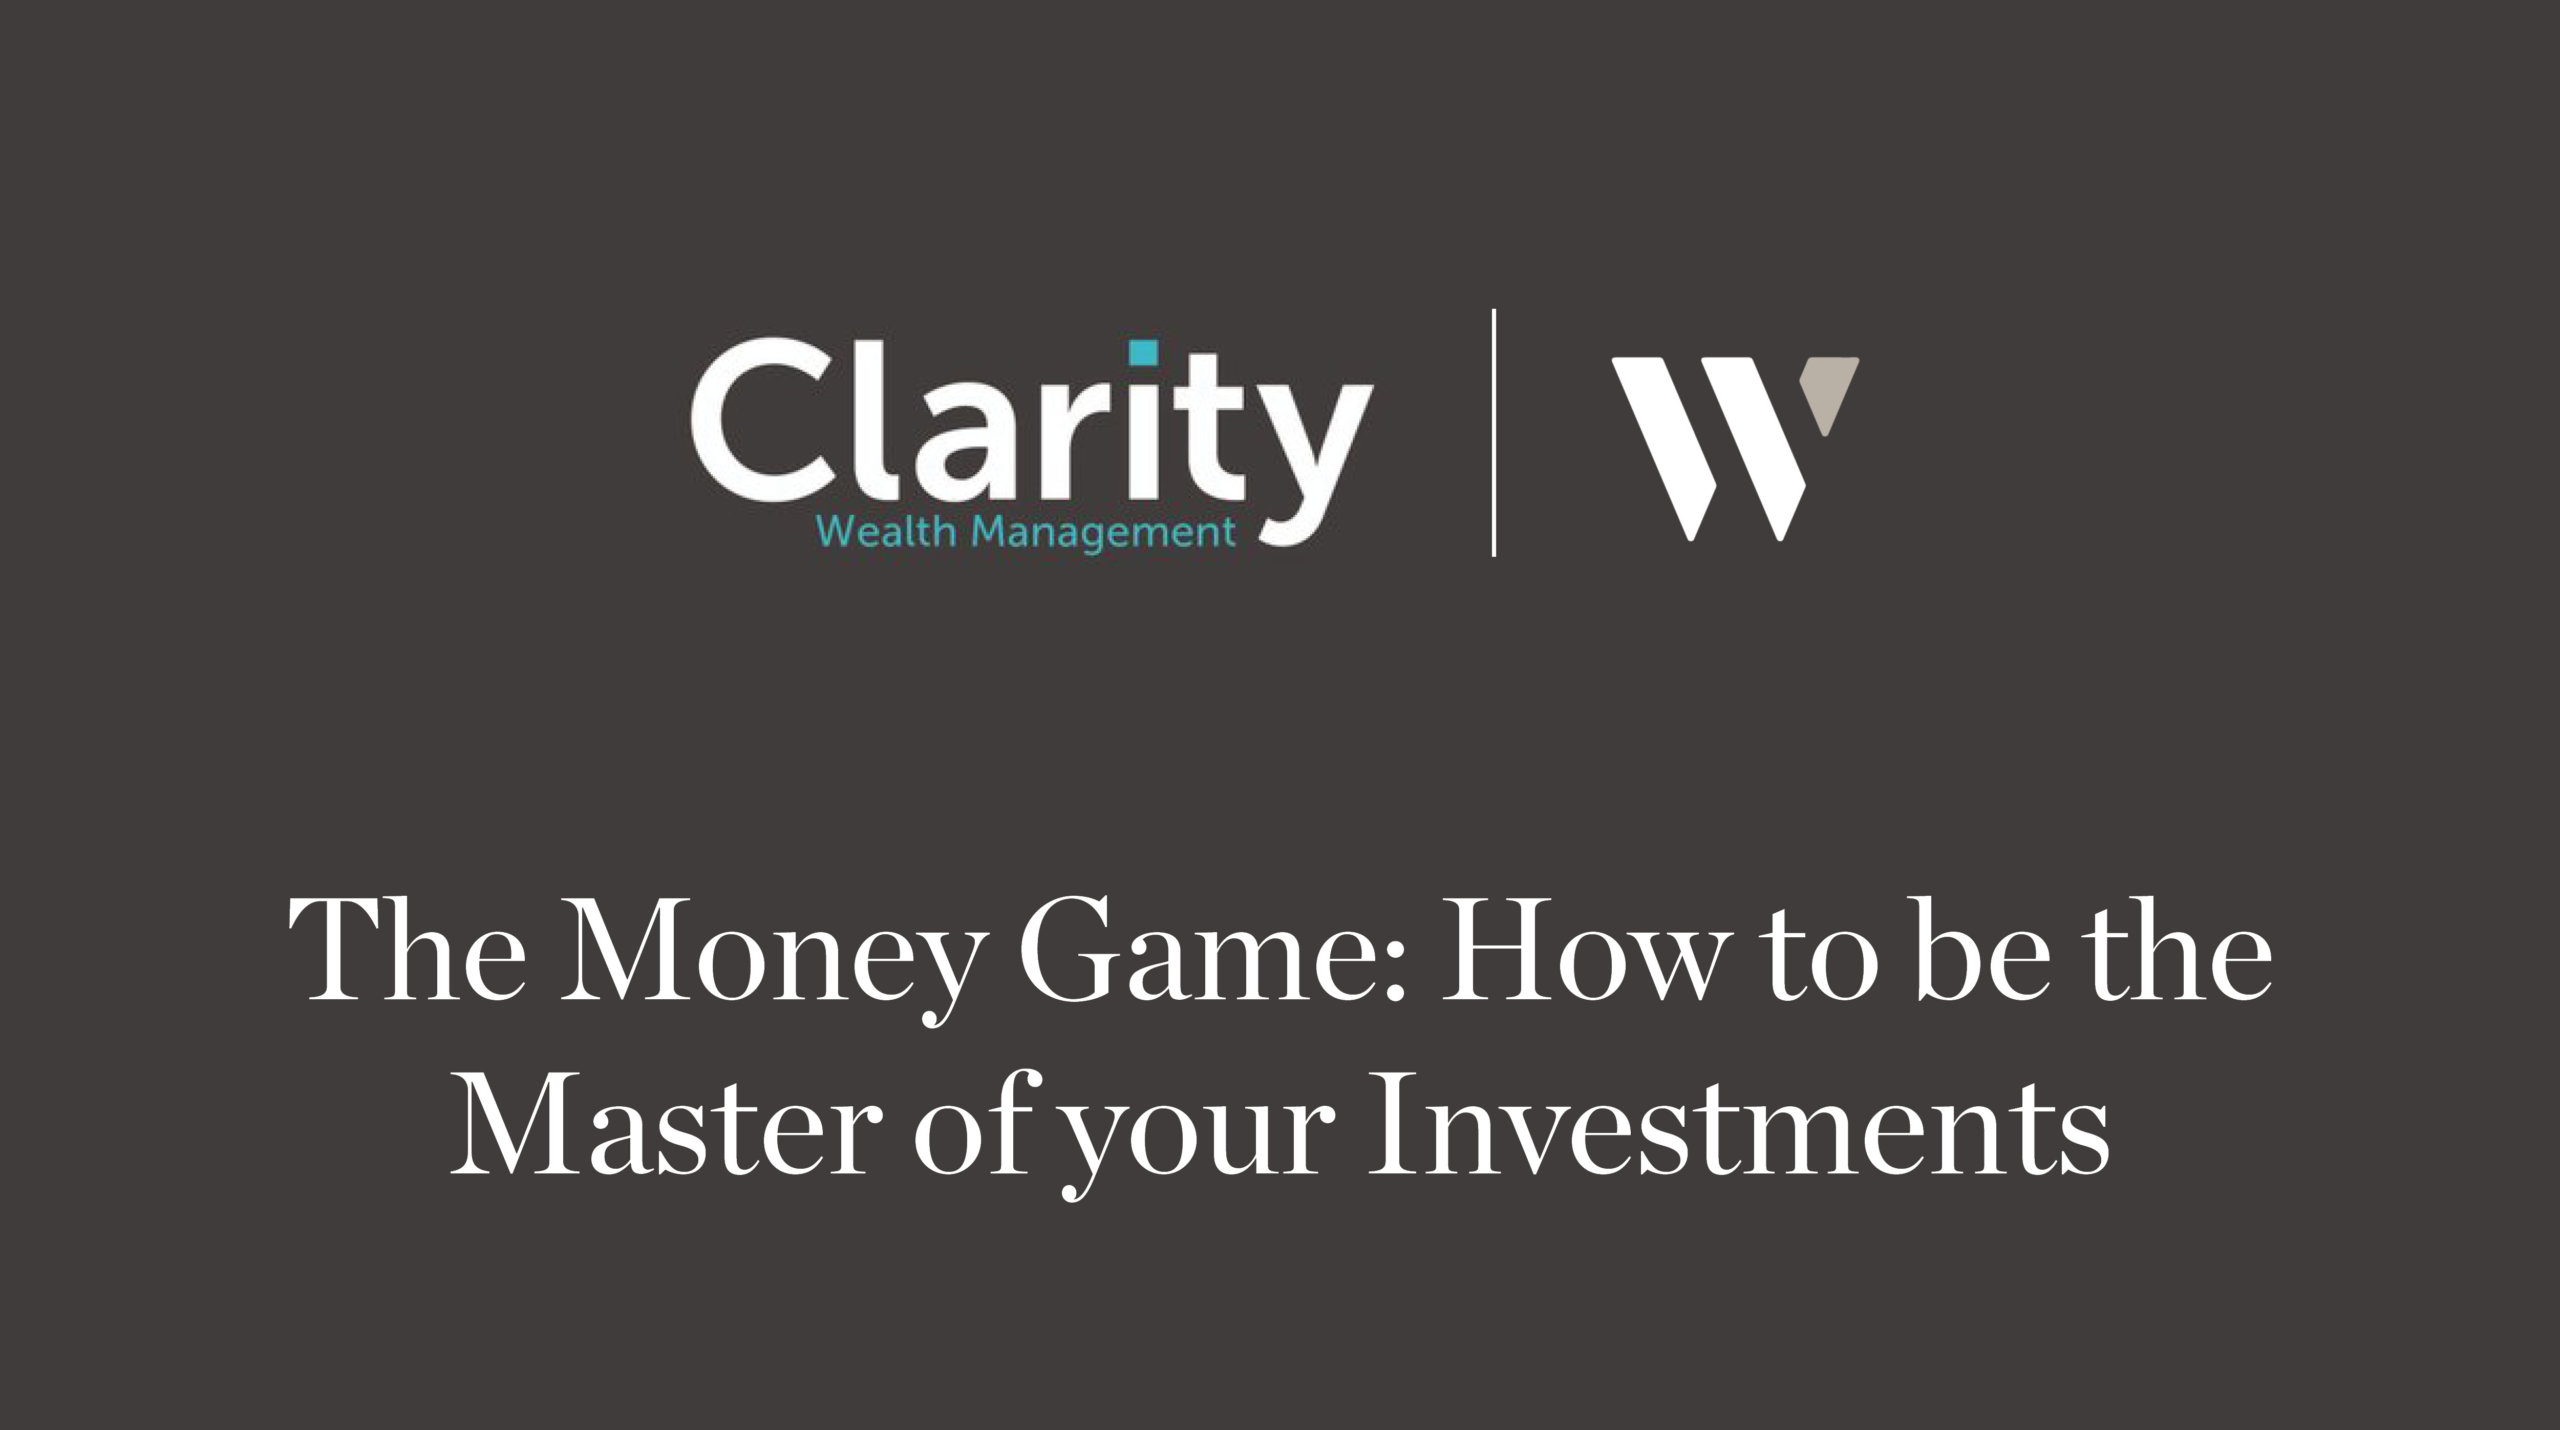 The Money Game - How to be the Master of your Investments